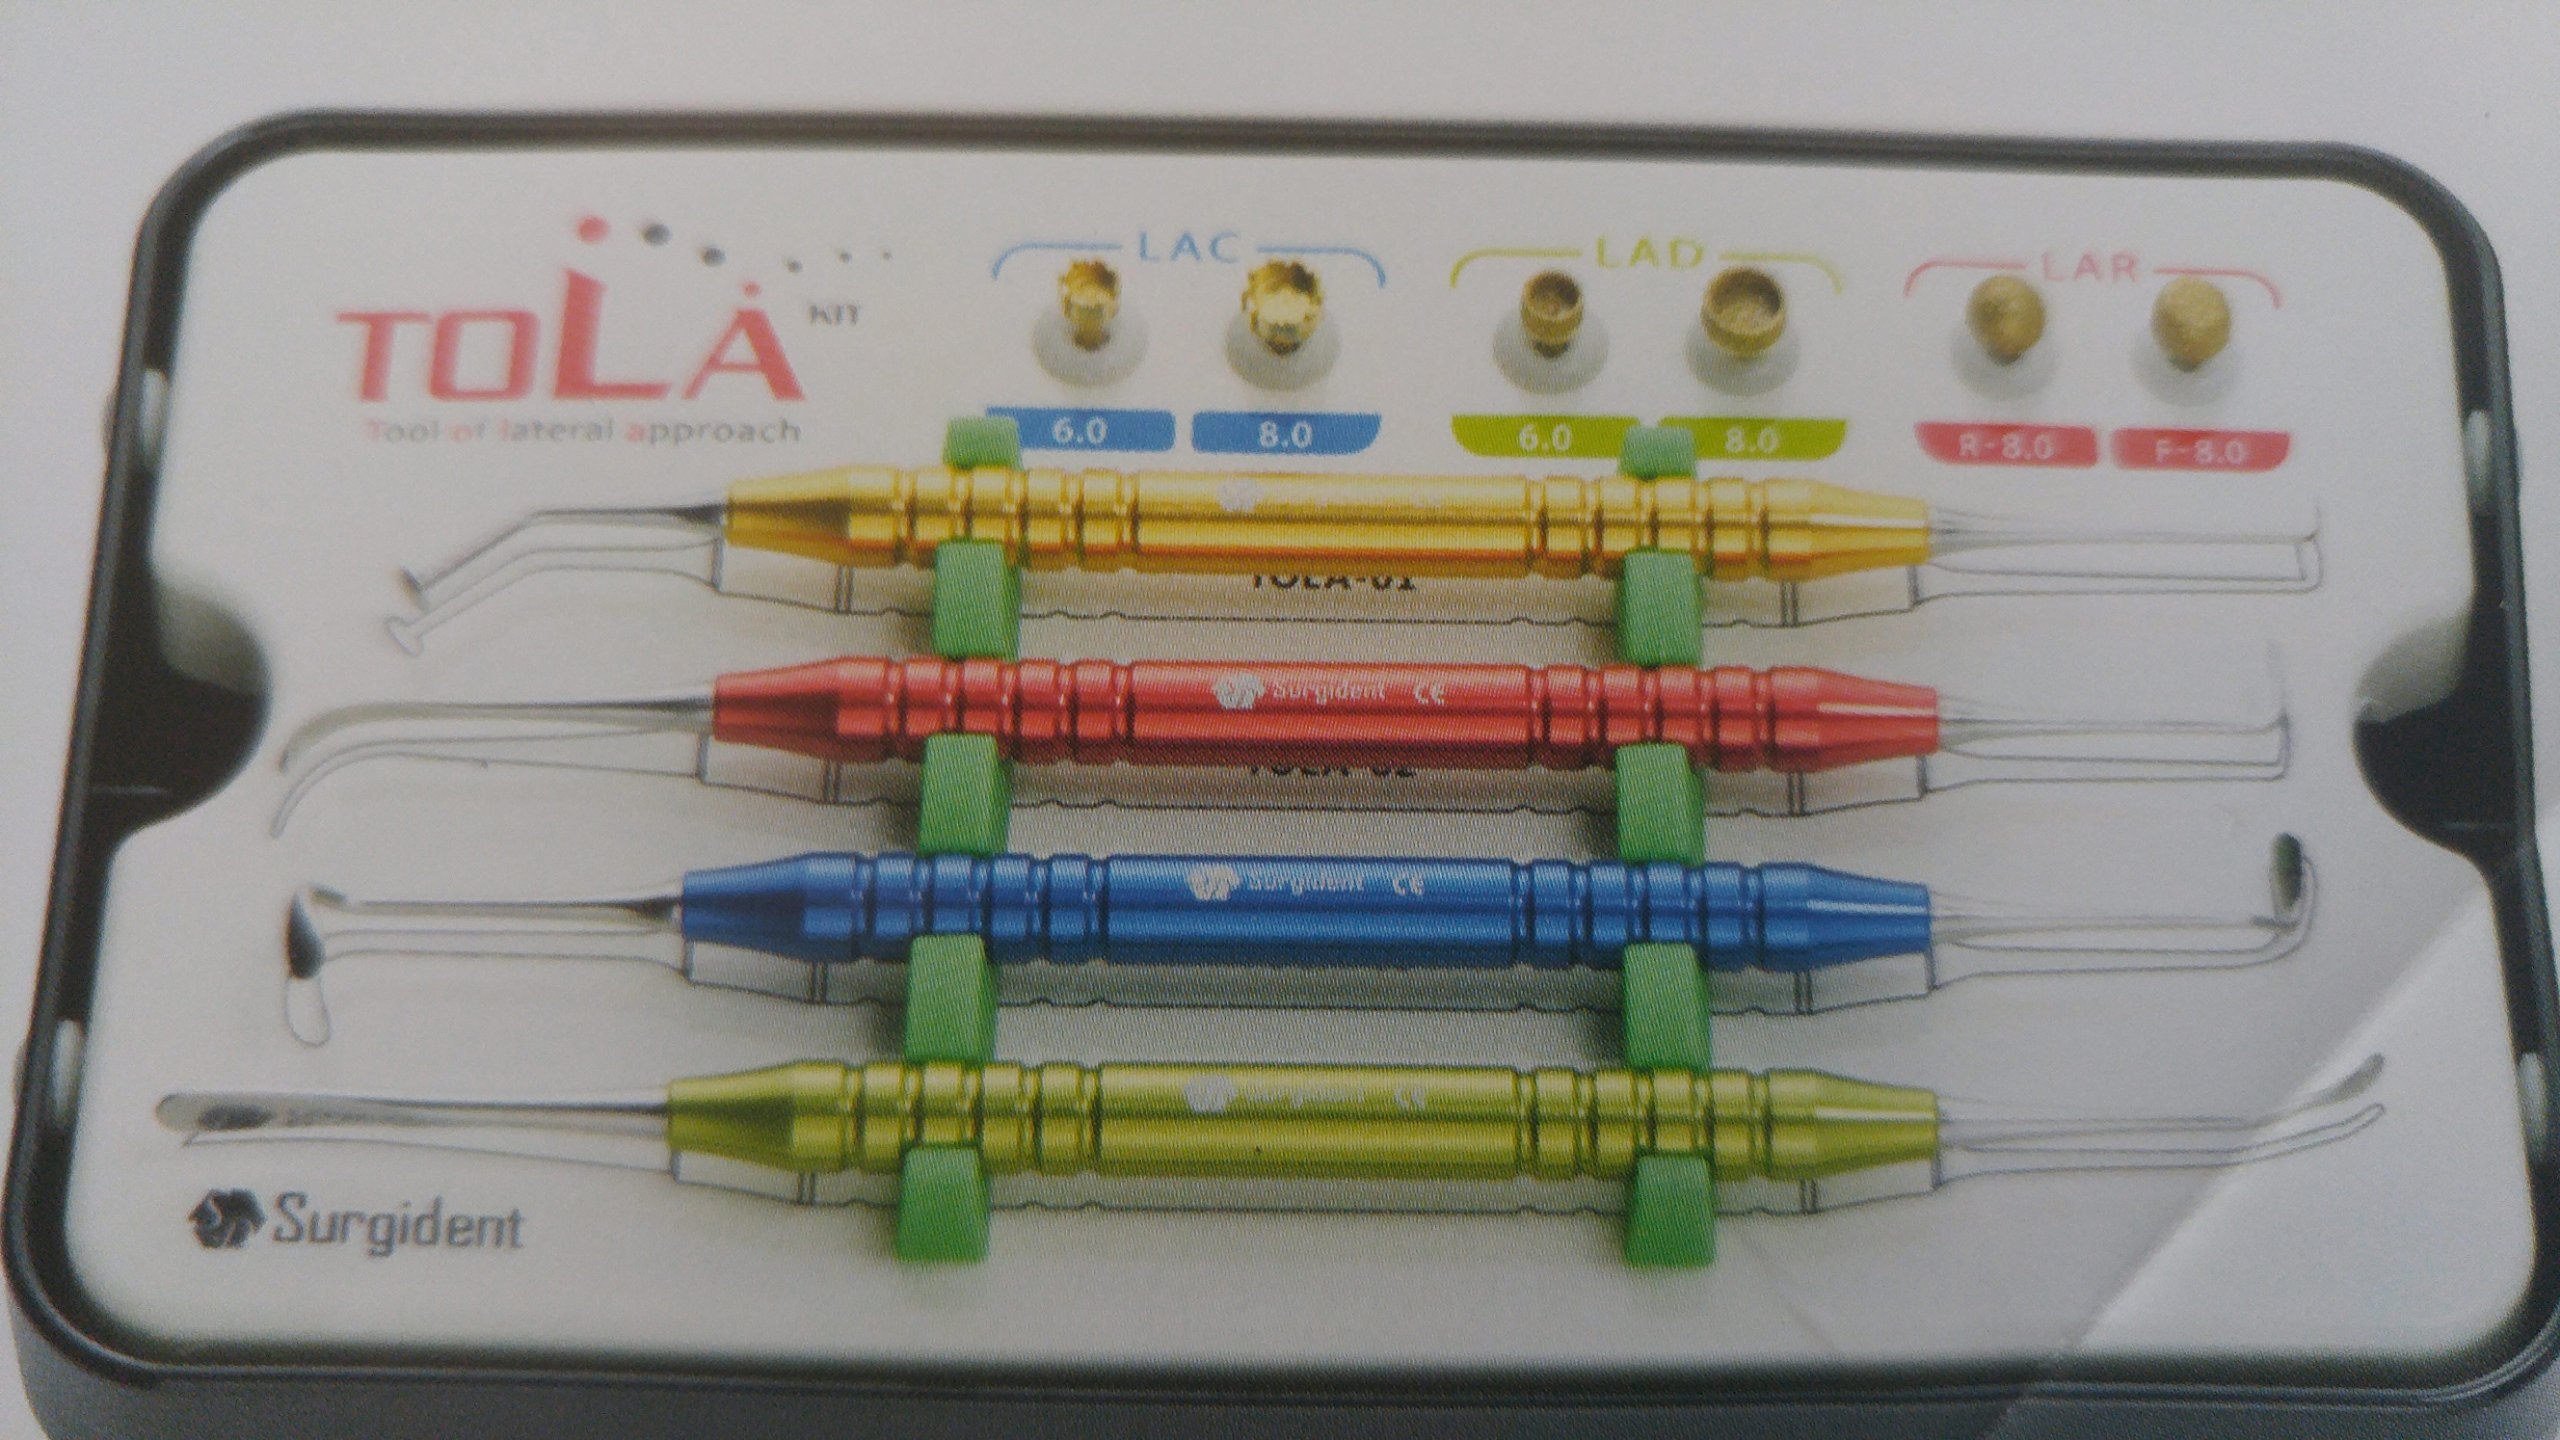 Surgident Dental TOLA-KIT( Tool of Lateral Approach )